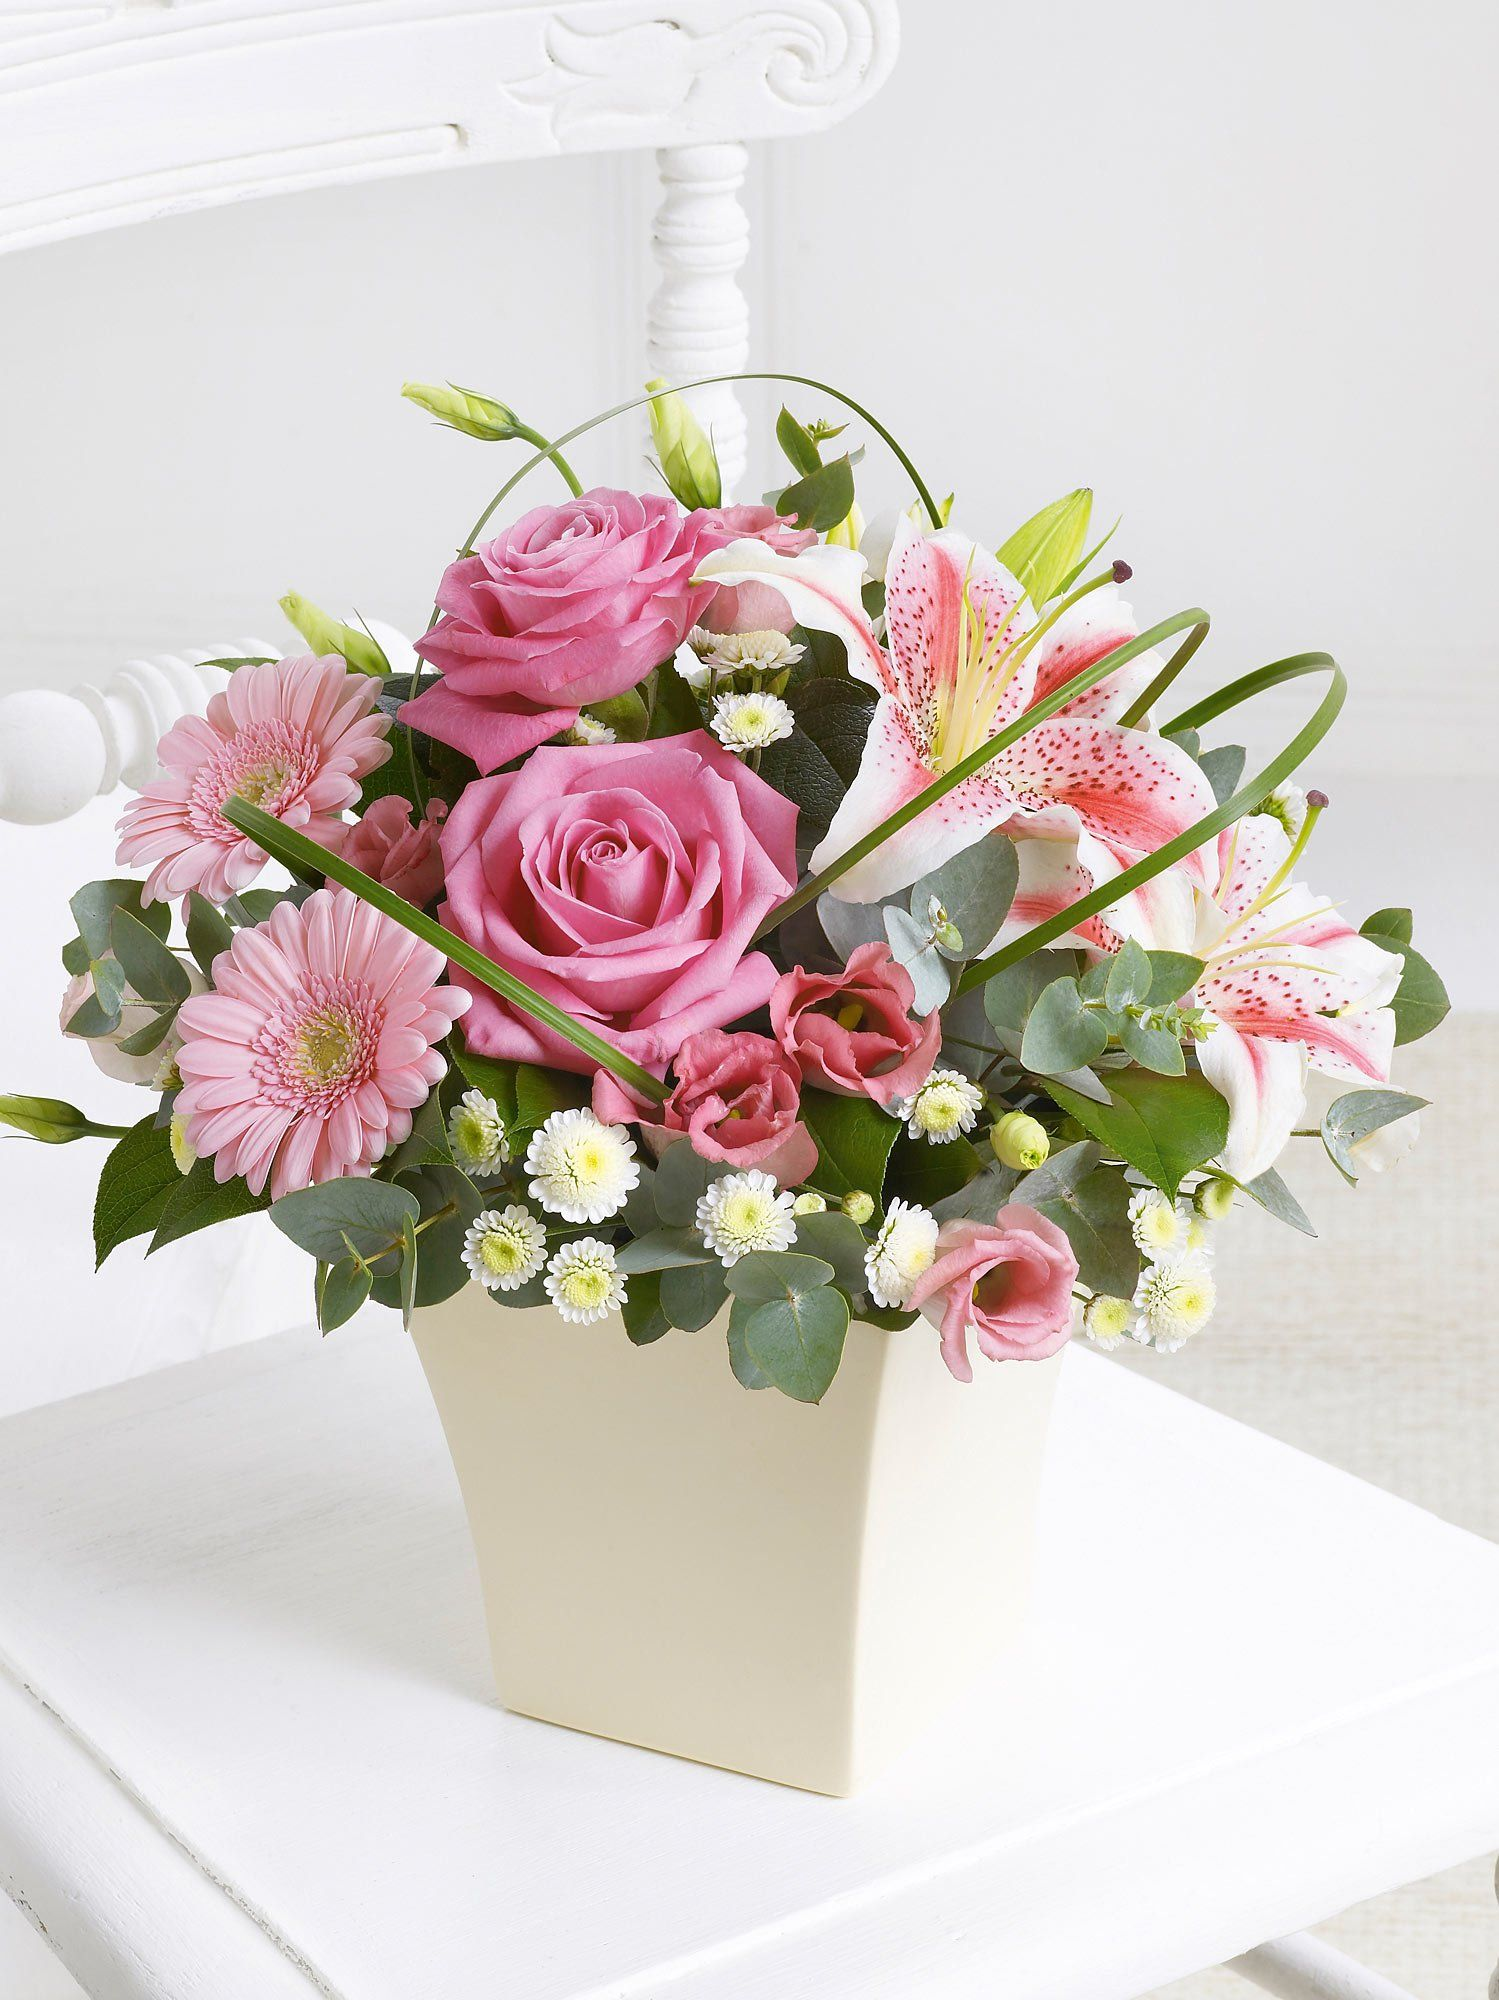 Pink Exquisite Arrangement Flower arrangements, Flower